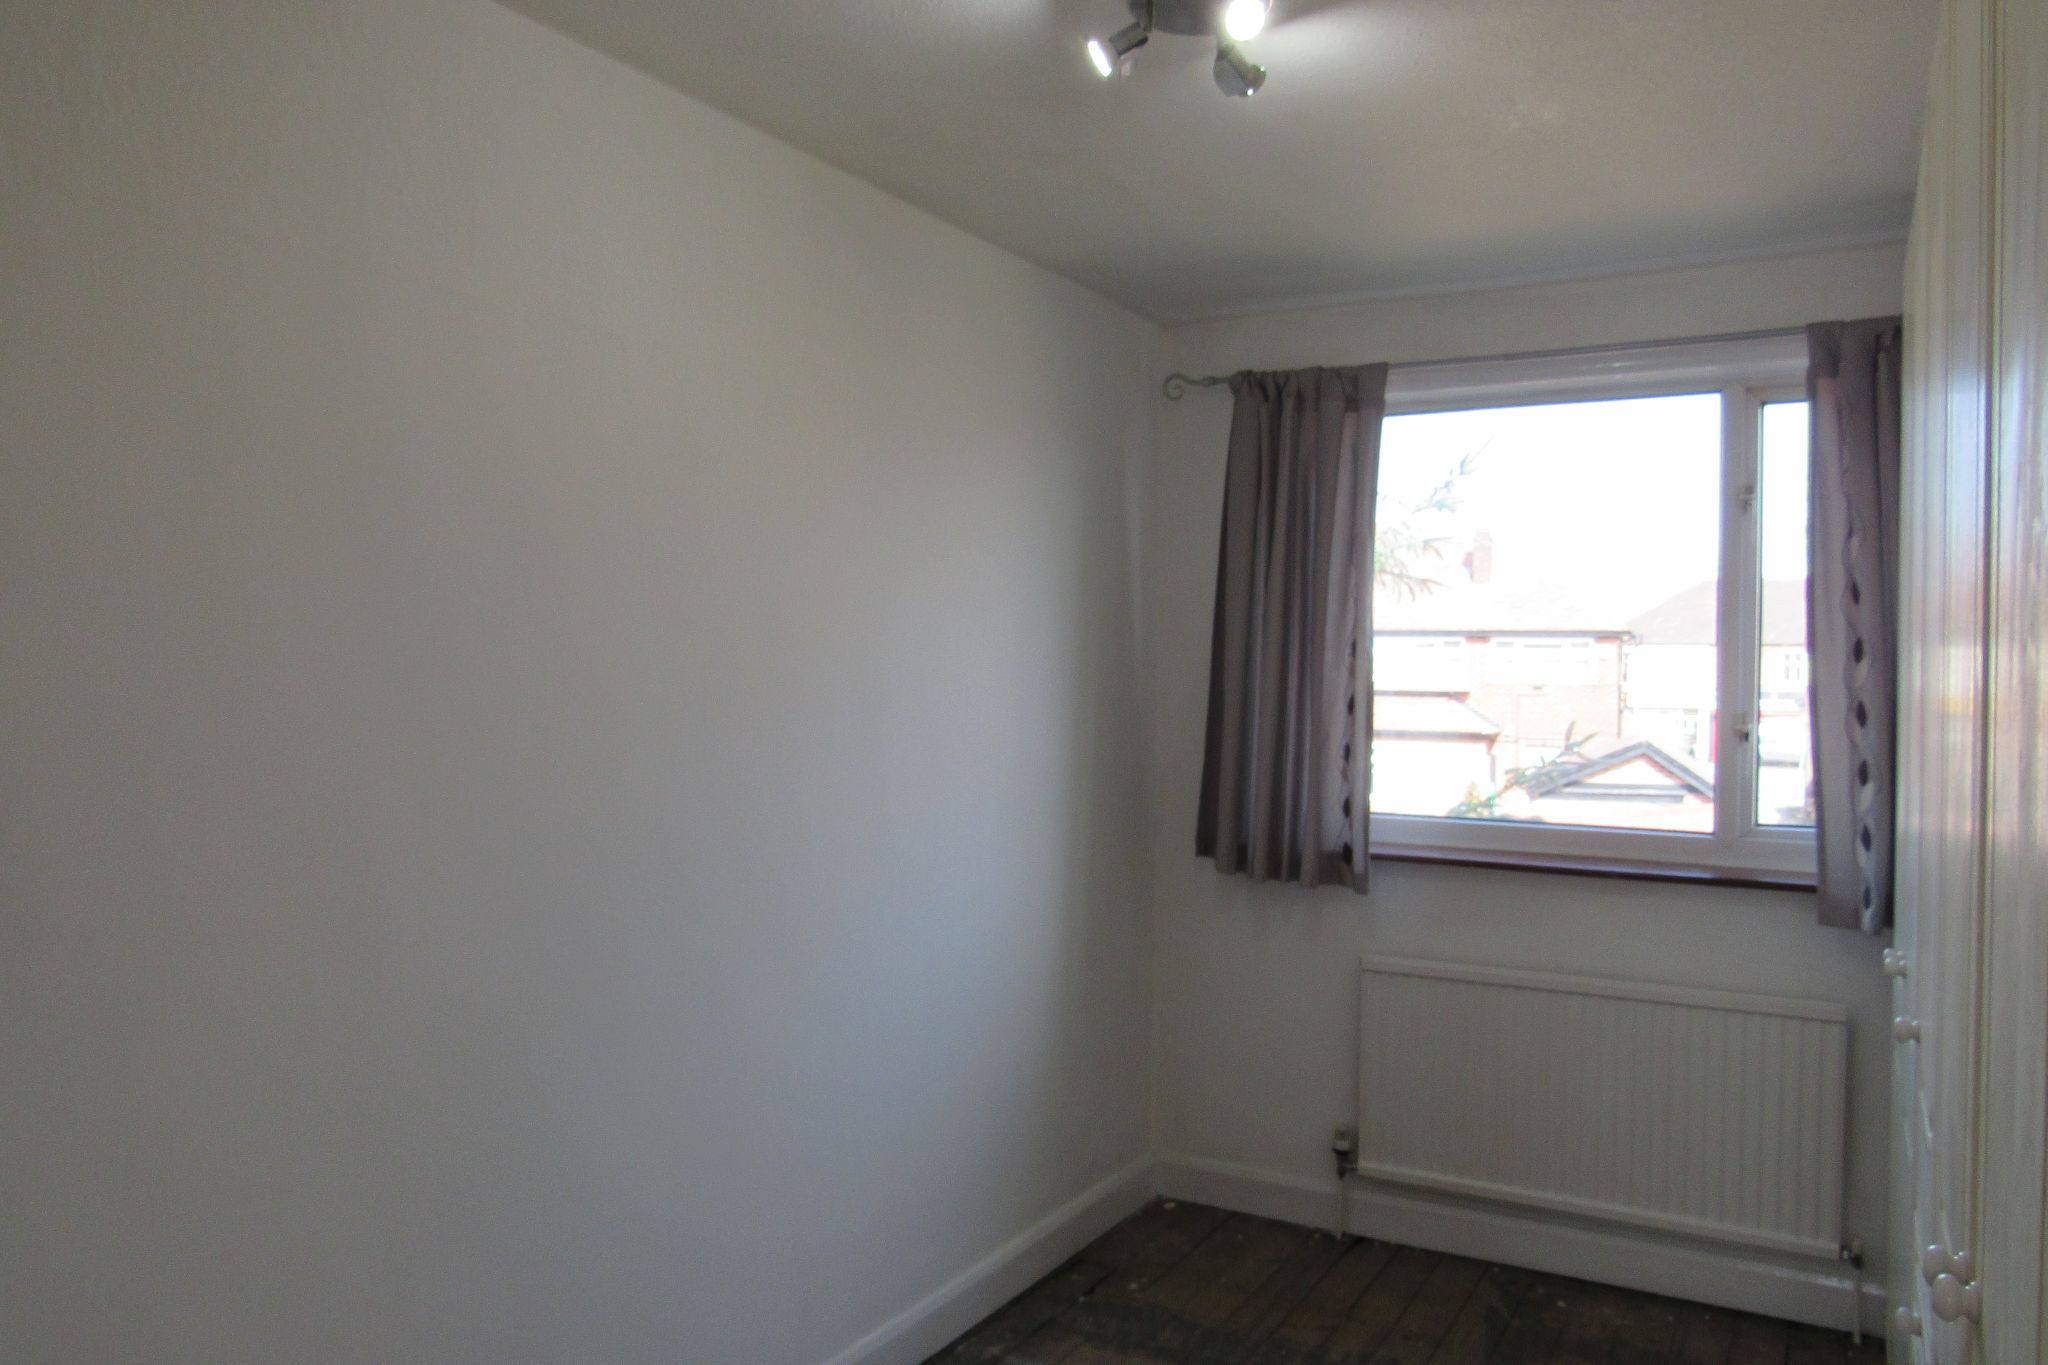 3 bedroom end terraced house SSTC in Manchester - Photograph 18.